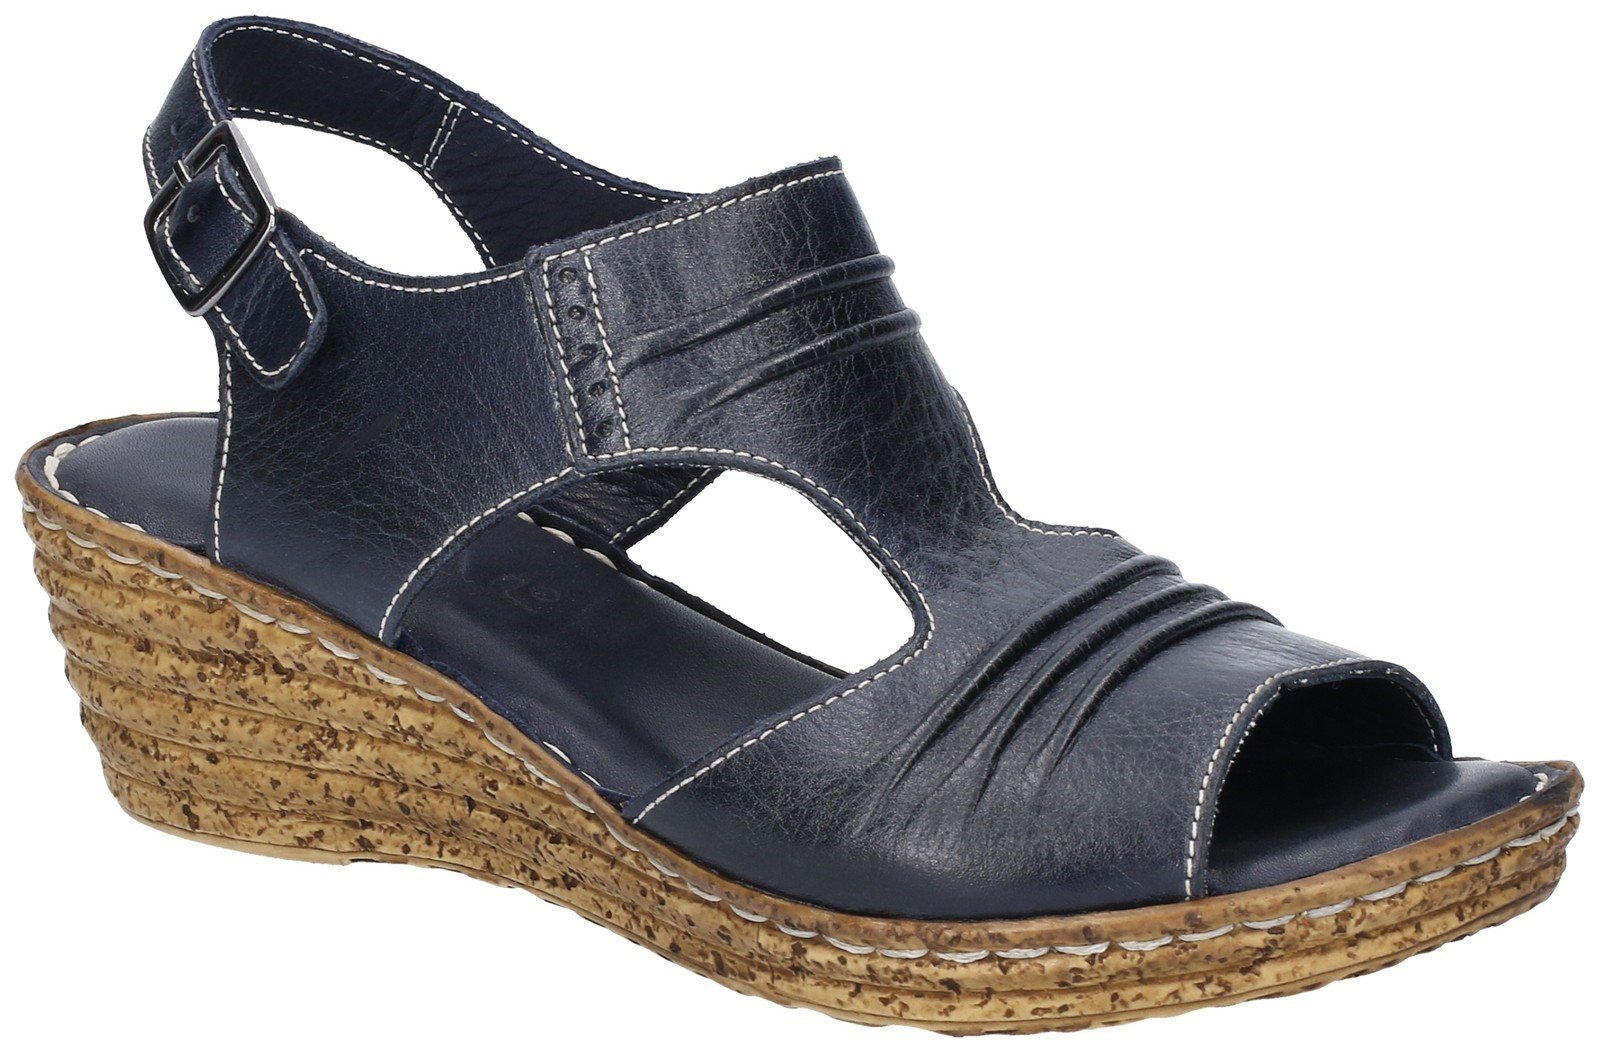 Fleet & Foster Women's Incence Pleated Leather Sandal Various Colours 28272 - Navy 7